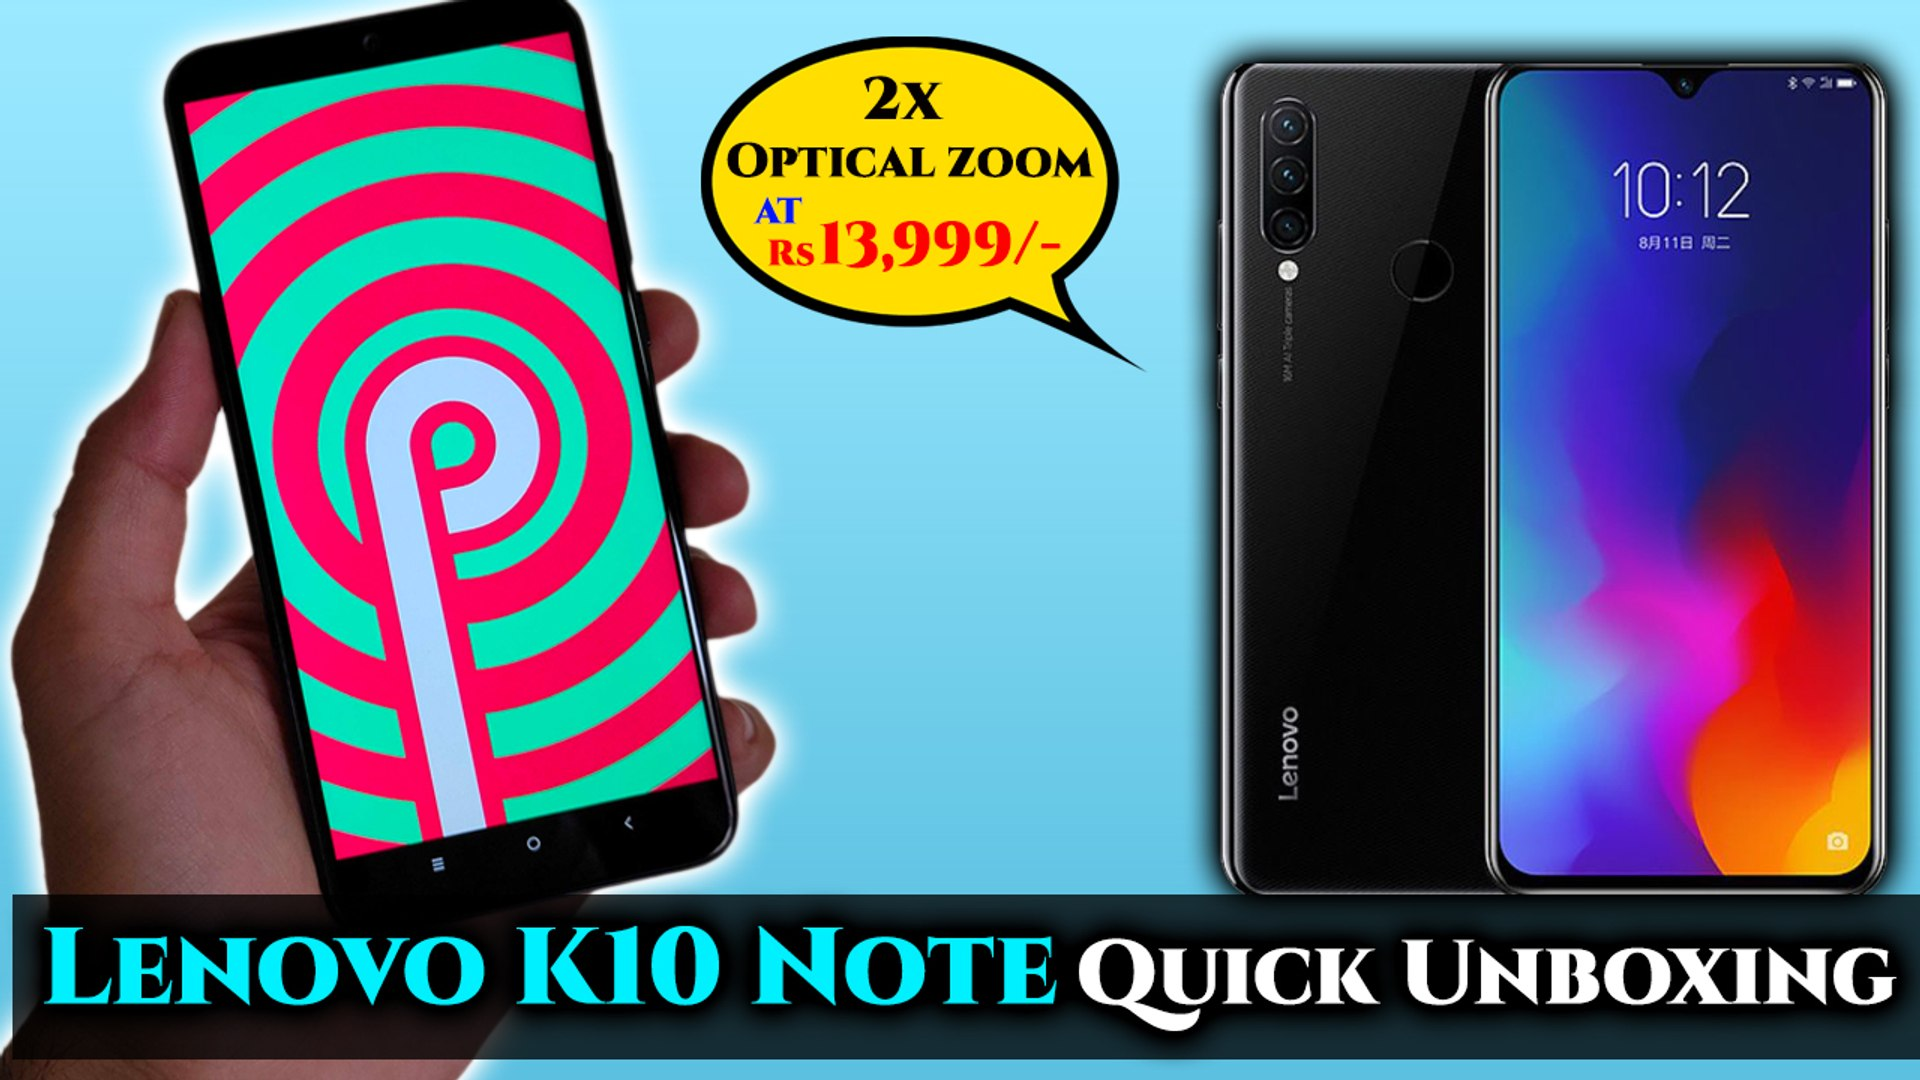 Lenovo K10 Note Quick Unboxing, Specifications And Camera Samples